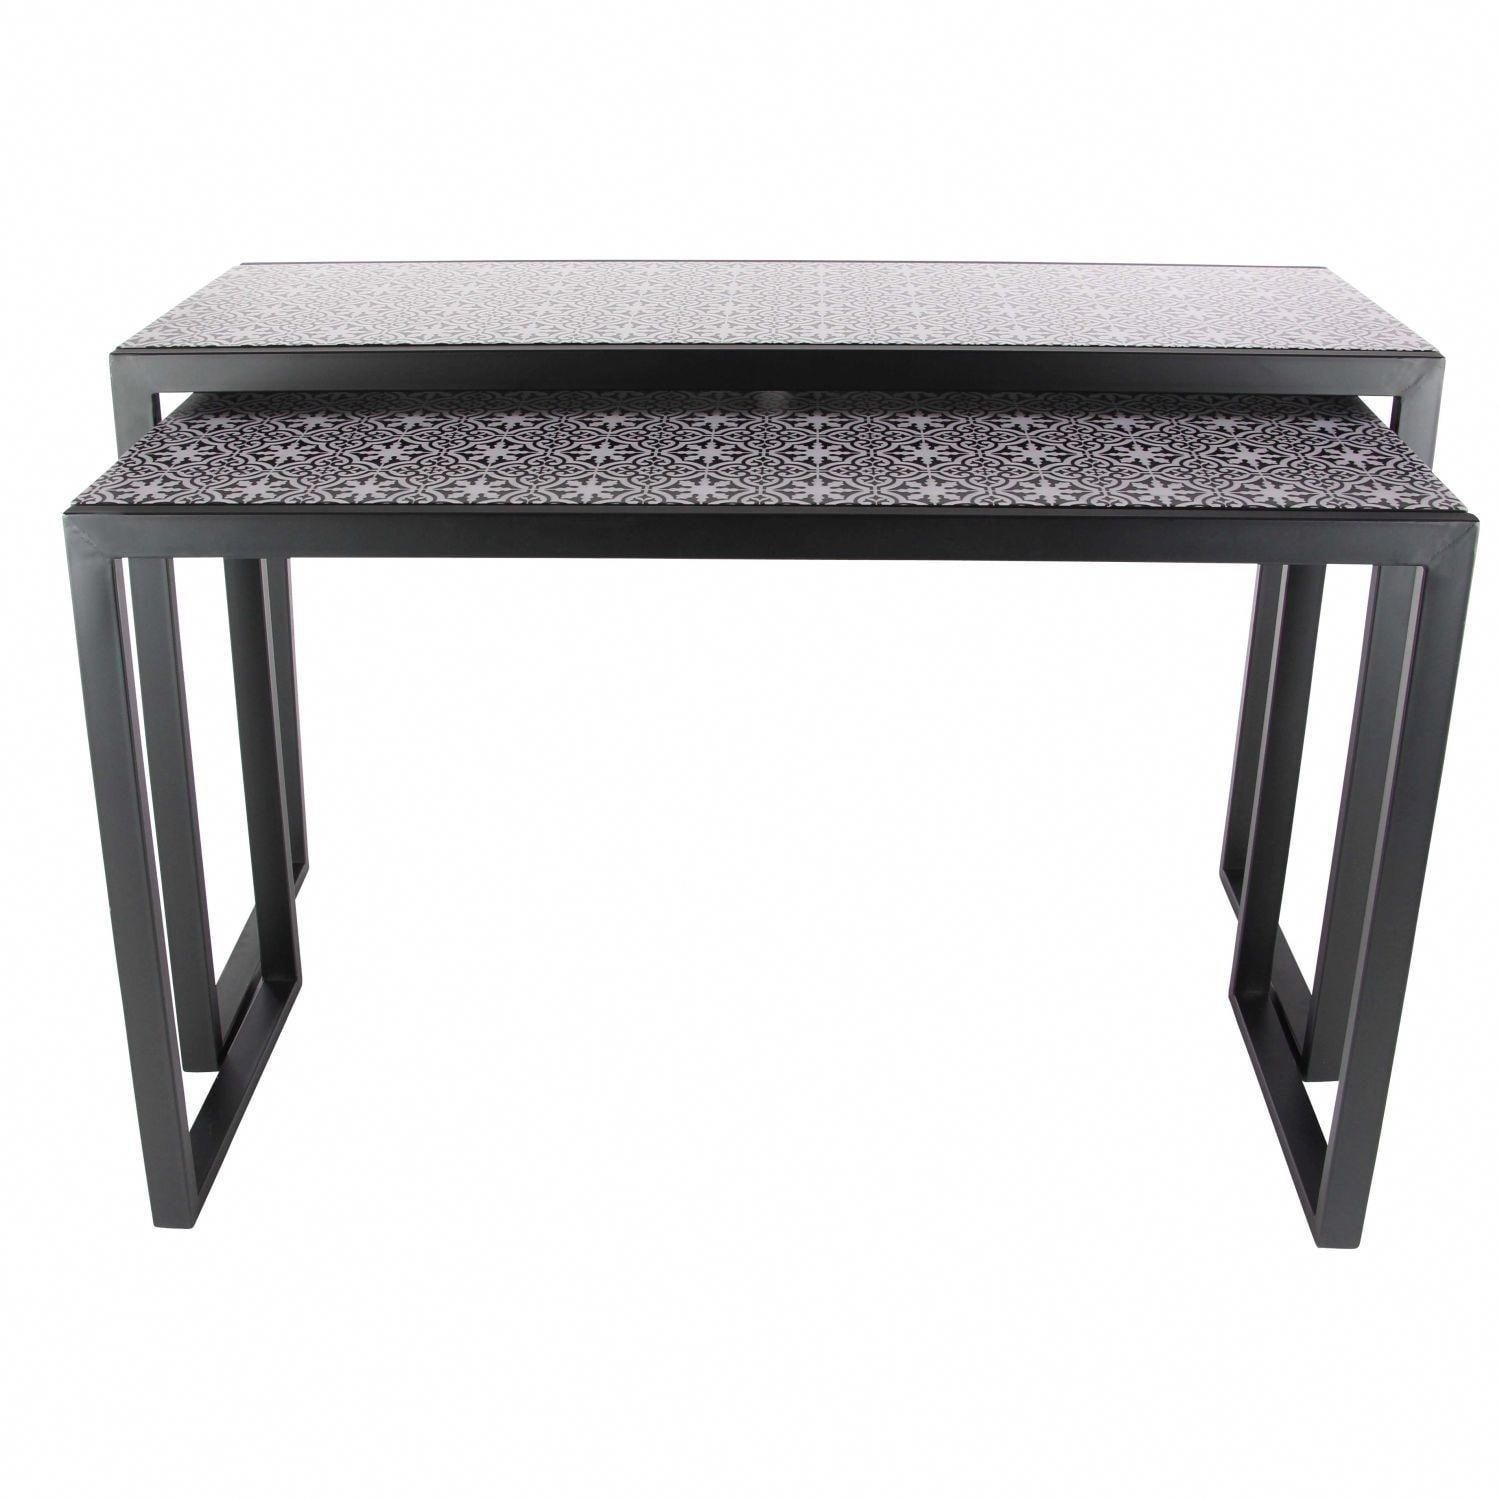 Studio 350 Metal Wood, White Console Table Set Of 2 Intended For Balboa Carved Console Tables (View 7 of 30)